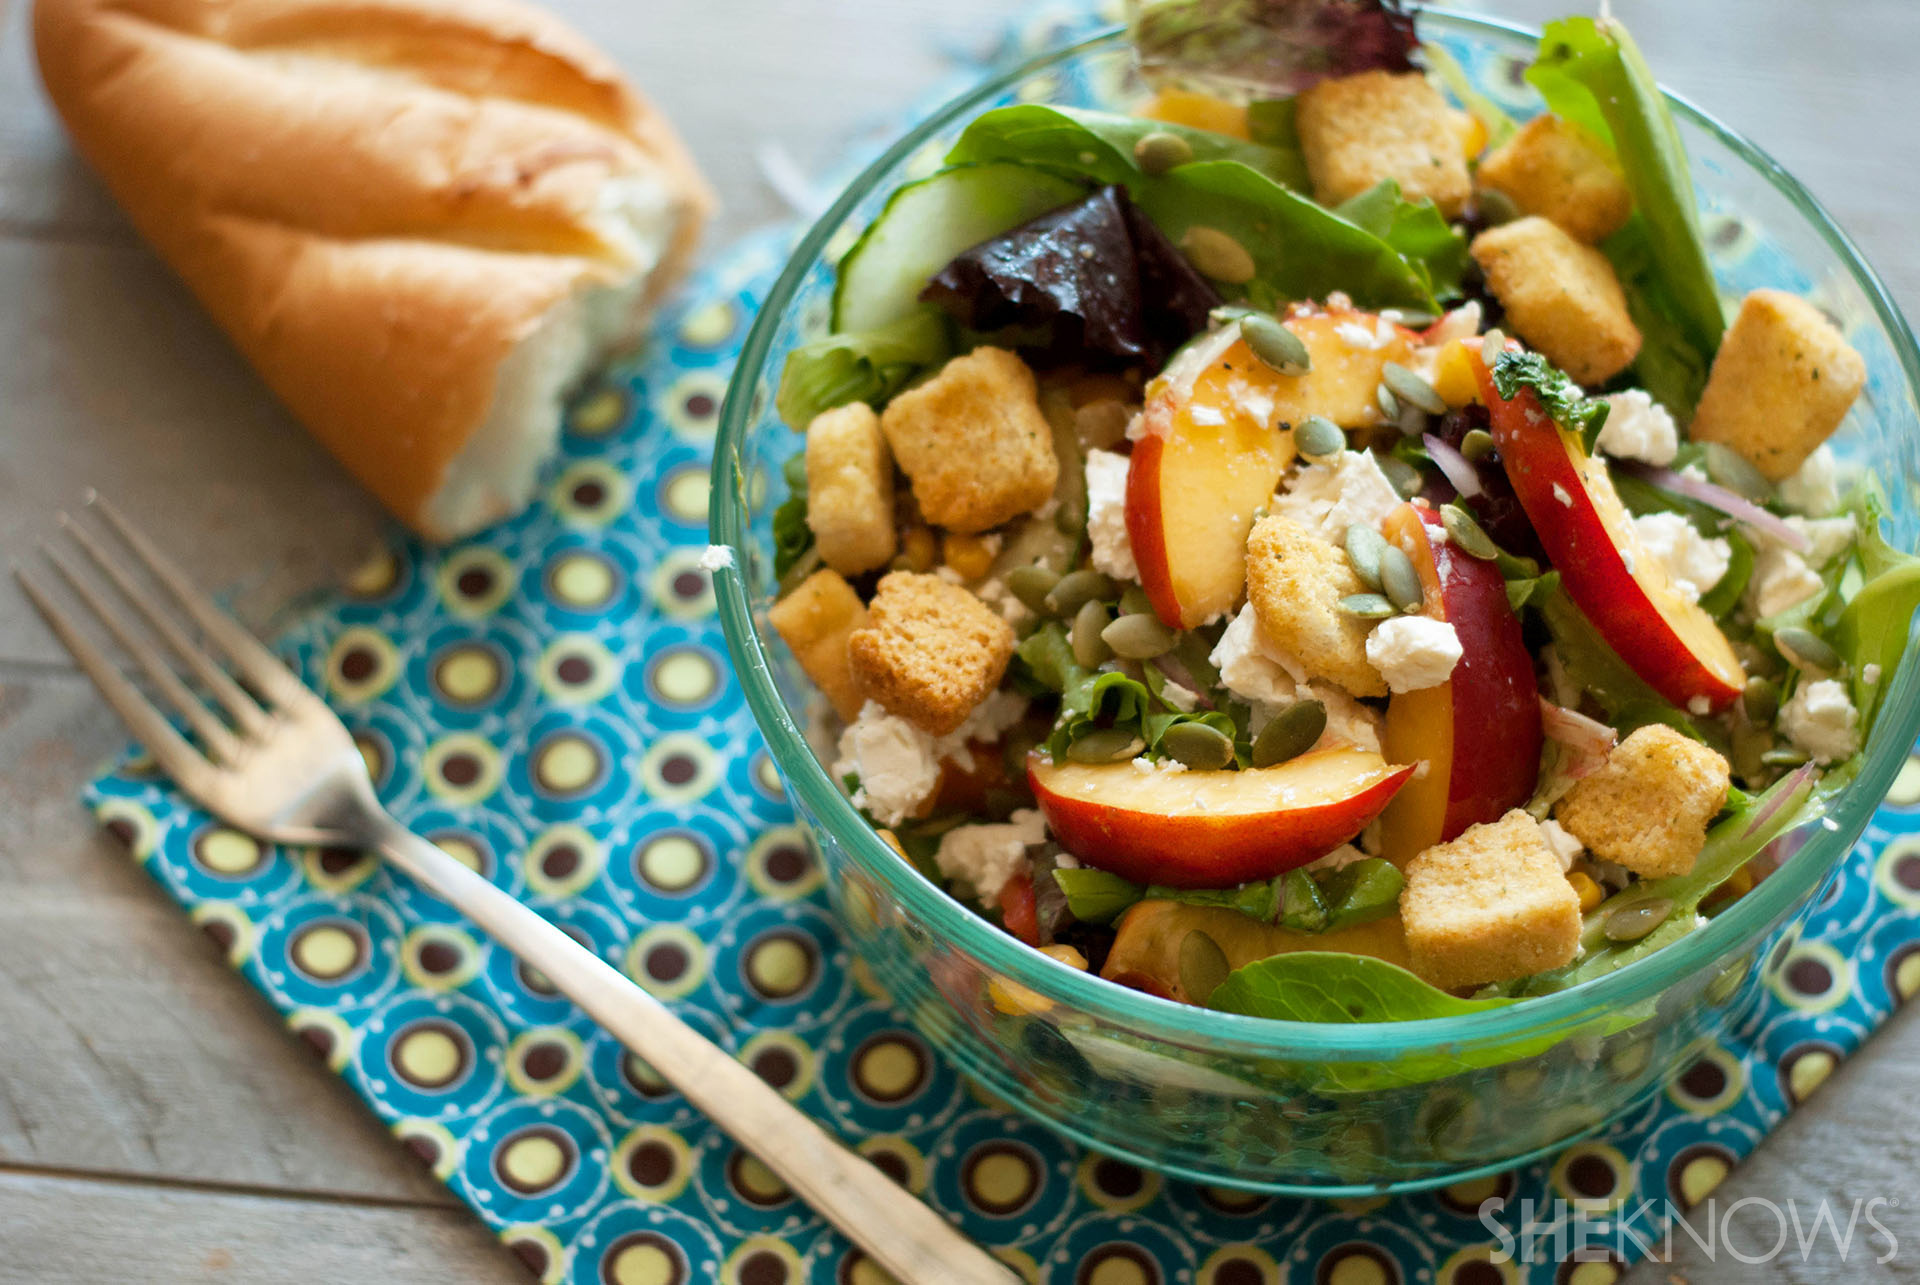 End of summer nectarine salad recipe